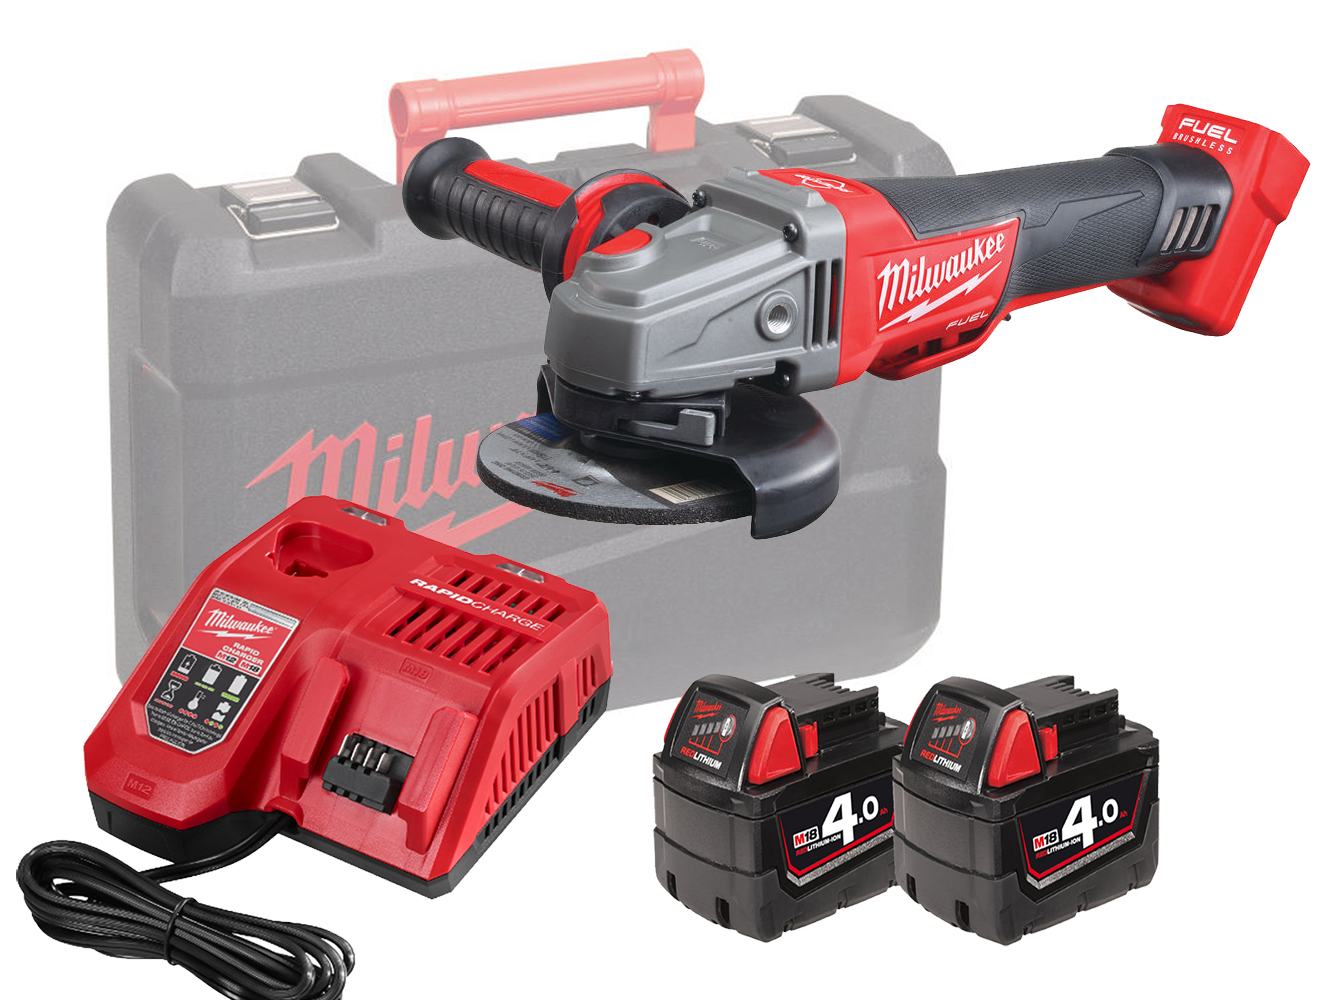 Milwaukee M18CAG115XPDB 18V Fuel 115mm Breaking Grinder With Paddle Switch - 4.0Ah Pack